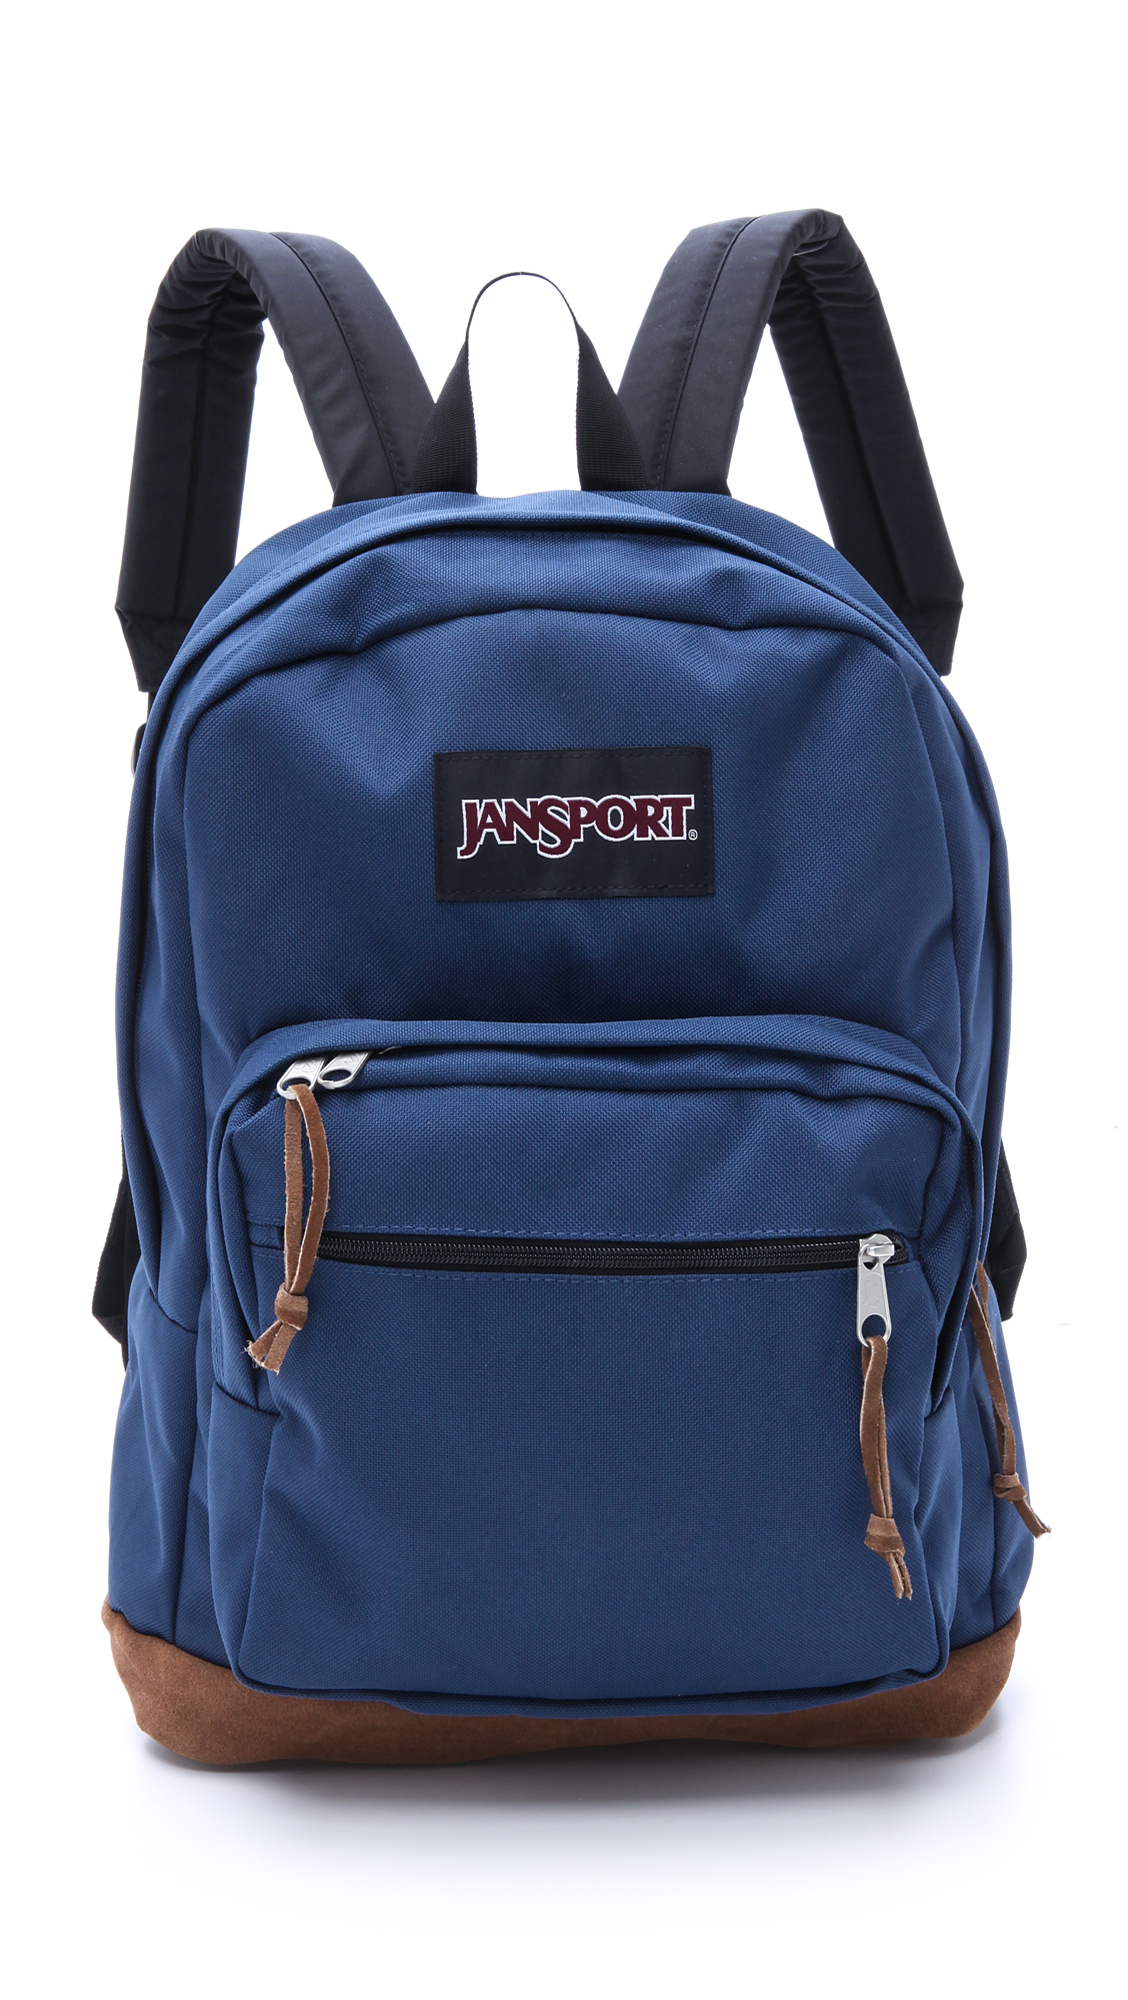 0924409f2a Jansport Right Pack Cordura Backpack- Fenix Toulouse Handball